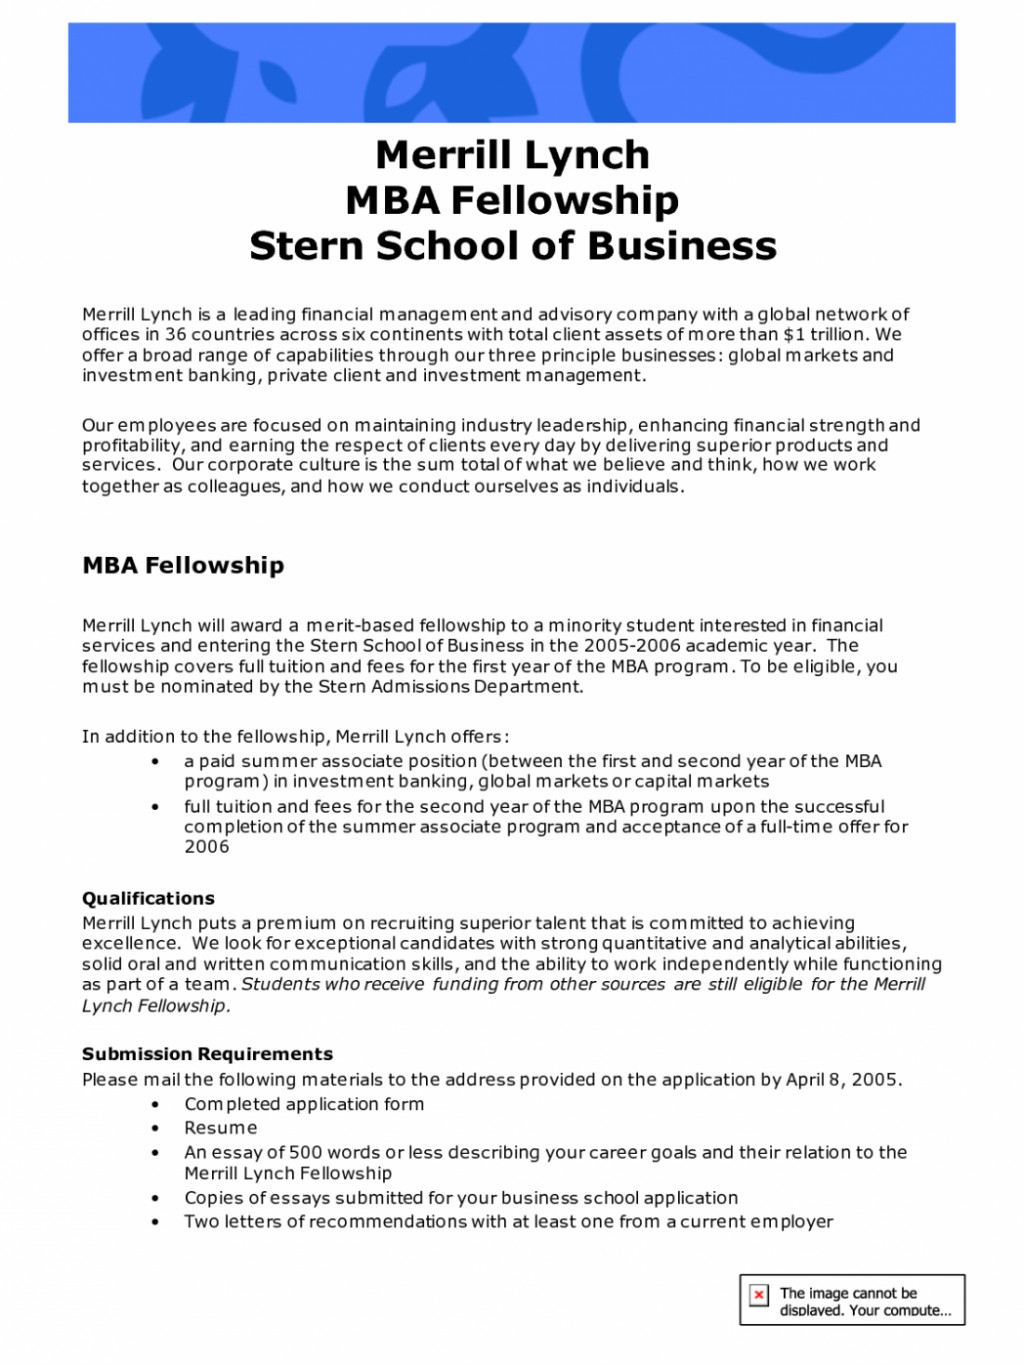 014 Career Goals Essay Short Term And Long Essays For Mba Research Paper Service Sample 4s 1048x1397 Fantastic Business Examples Scholarship Pdf Large